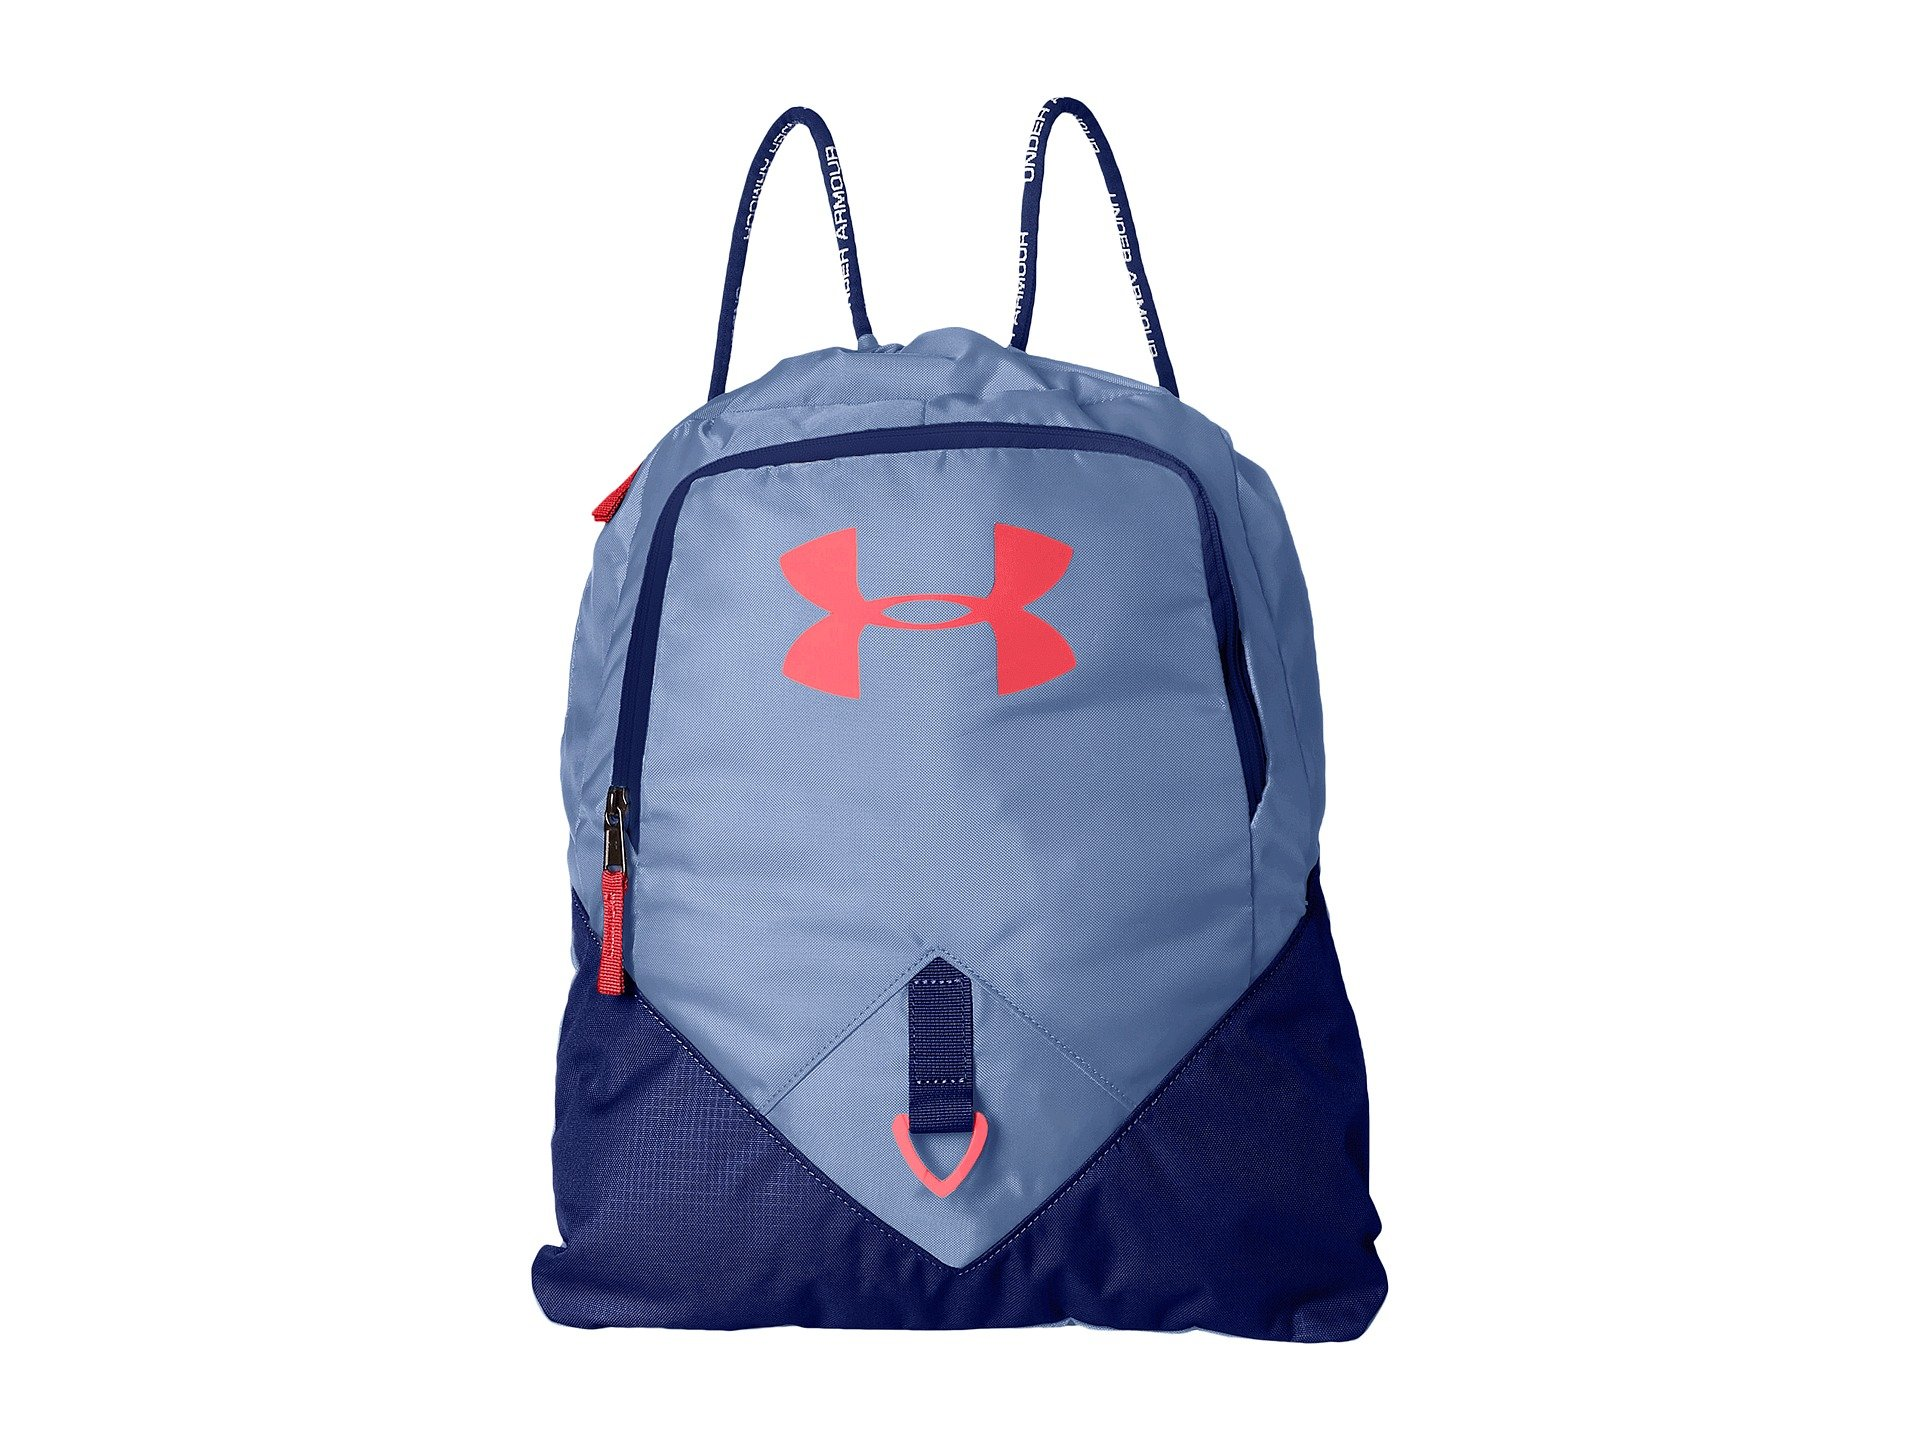 dde548d00791 Under Armour Ua Undeniable Sackpack In Aurora Purple Caspian Pink Chroma